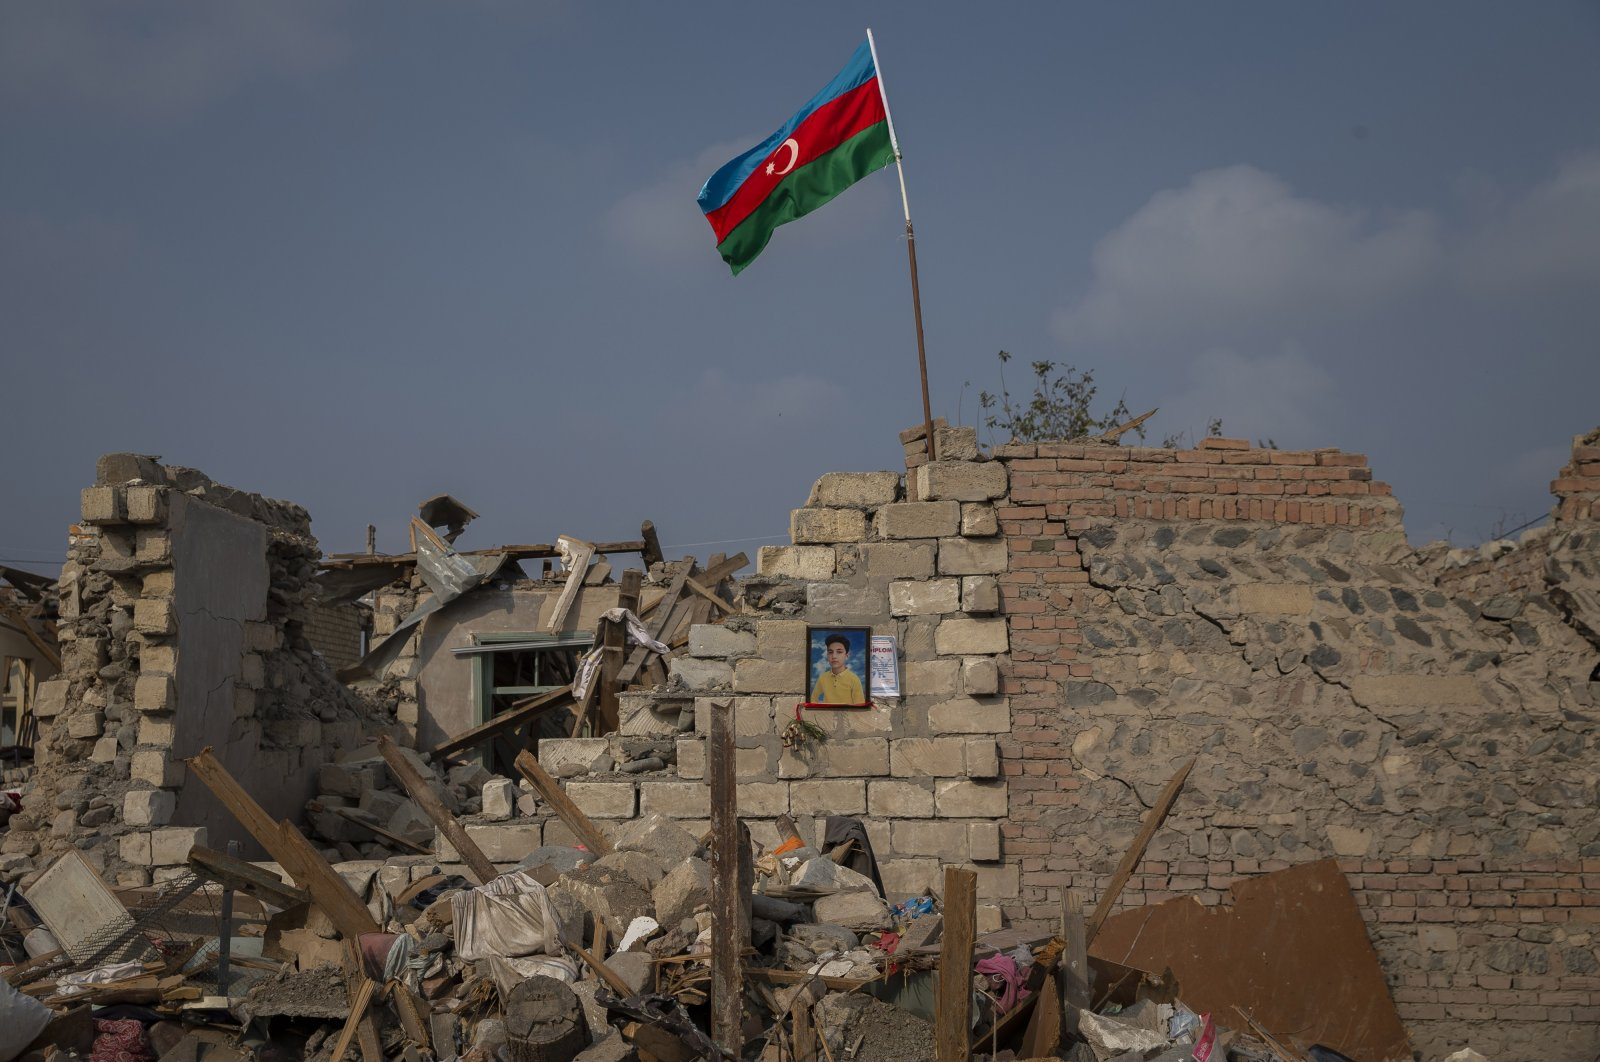 A picture of a boy killed in Armenian attacks hangs on the wall of a damaged building as an Azerbaijani flag waves on the rubble above, in the Azerbaijani city of Ganja, Nov. 5, 2020. (AA Photo)